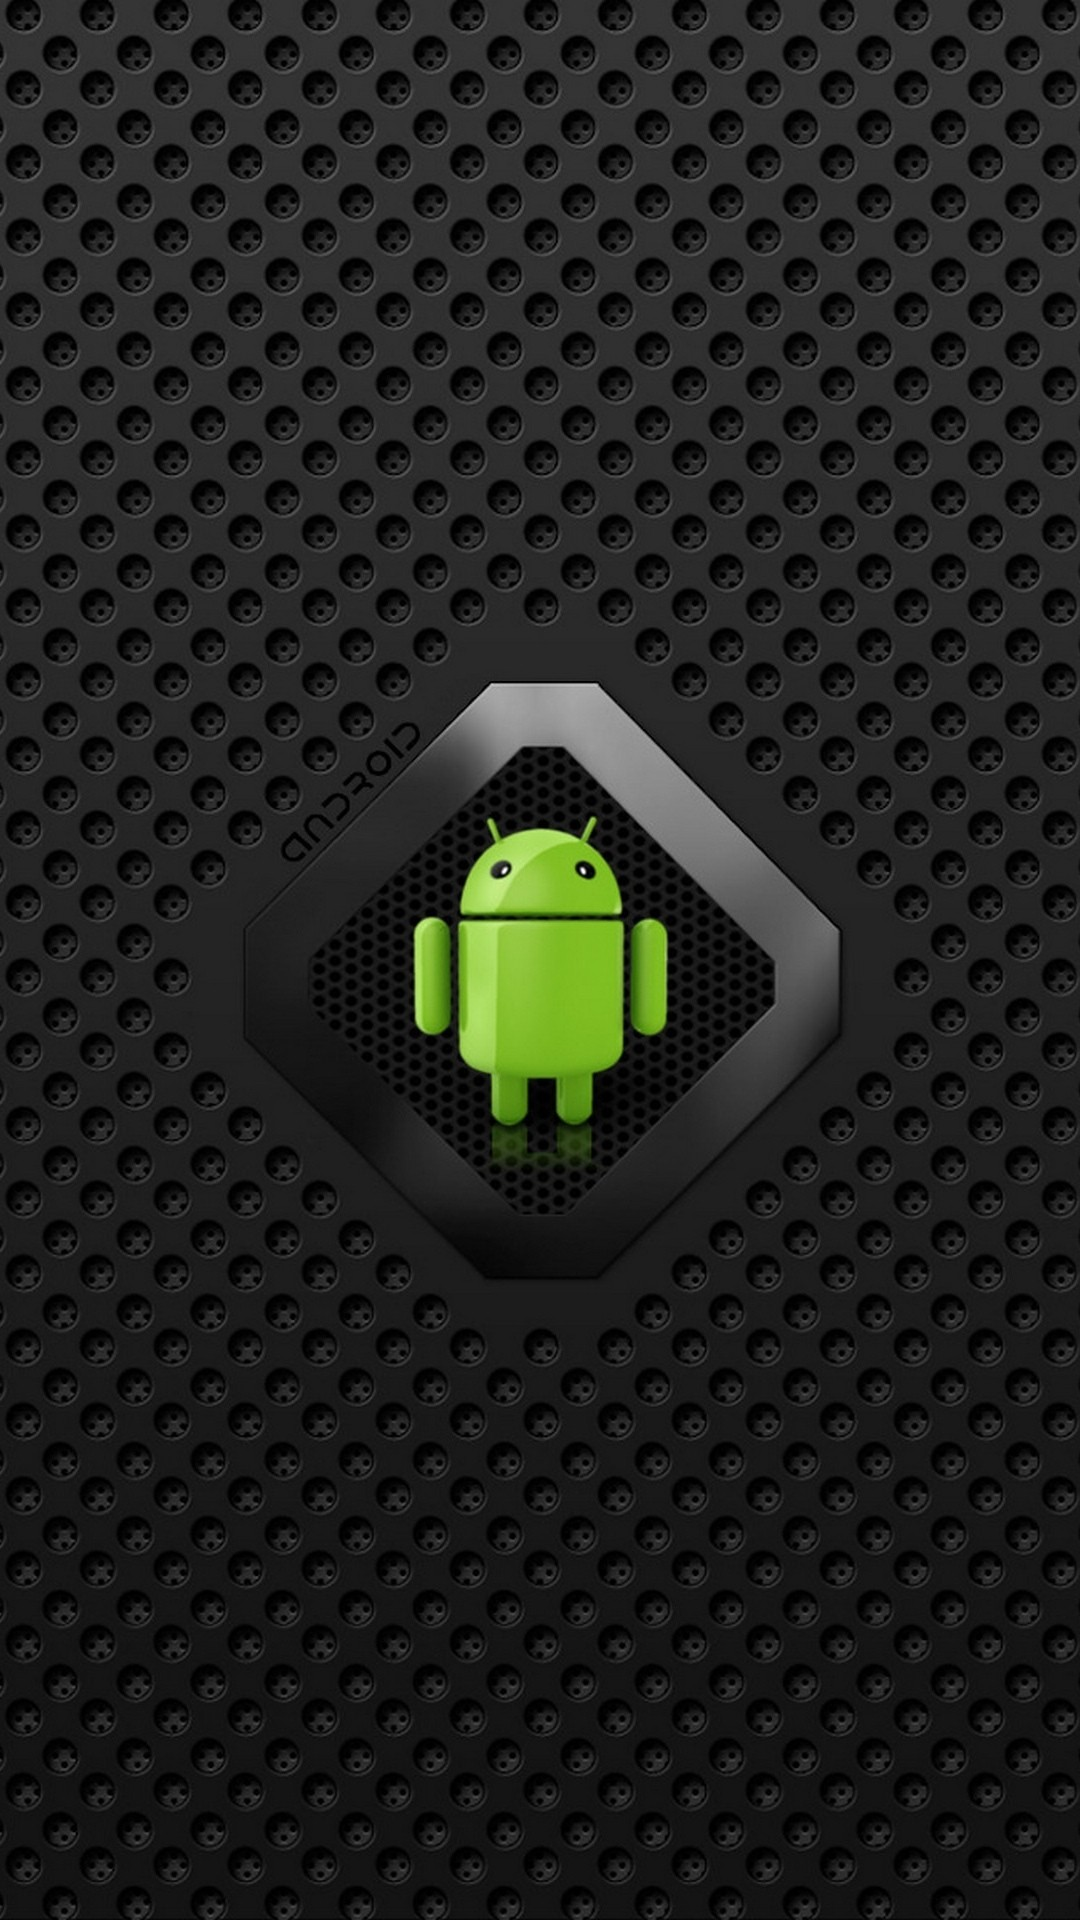 Images Android Phone Mac Wallpapers Tablet Amazing - 4k Phone Wallpaper Android - HD Wallpaper